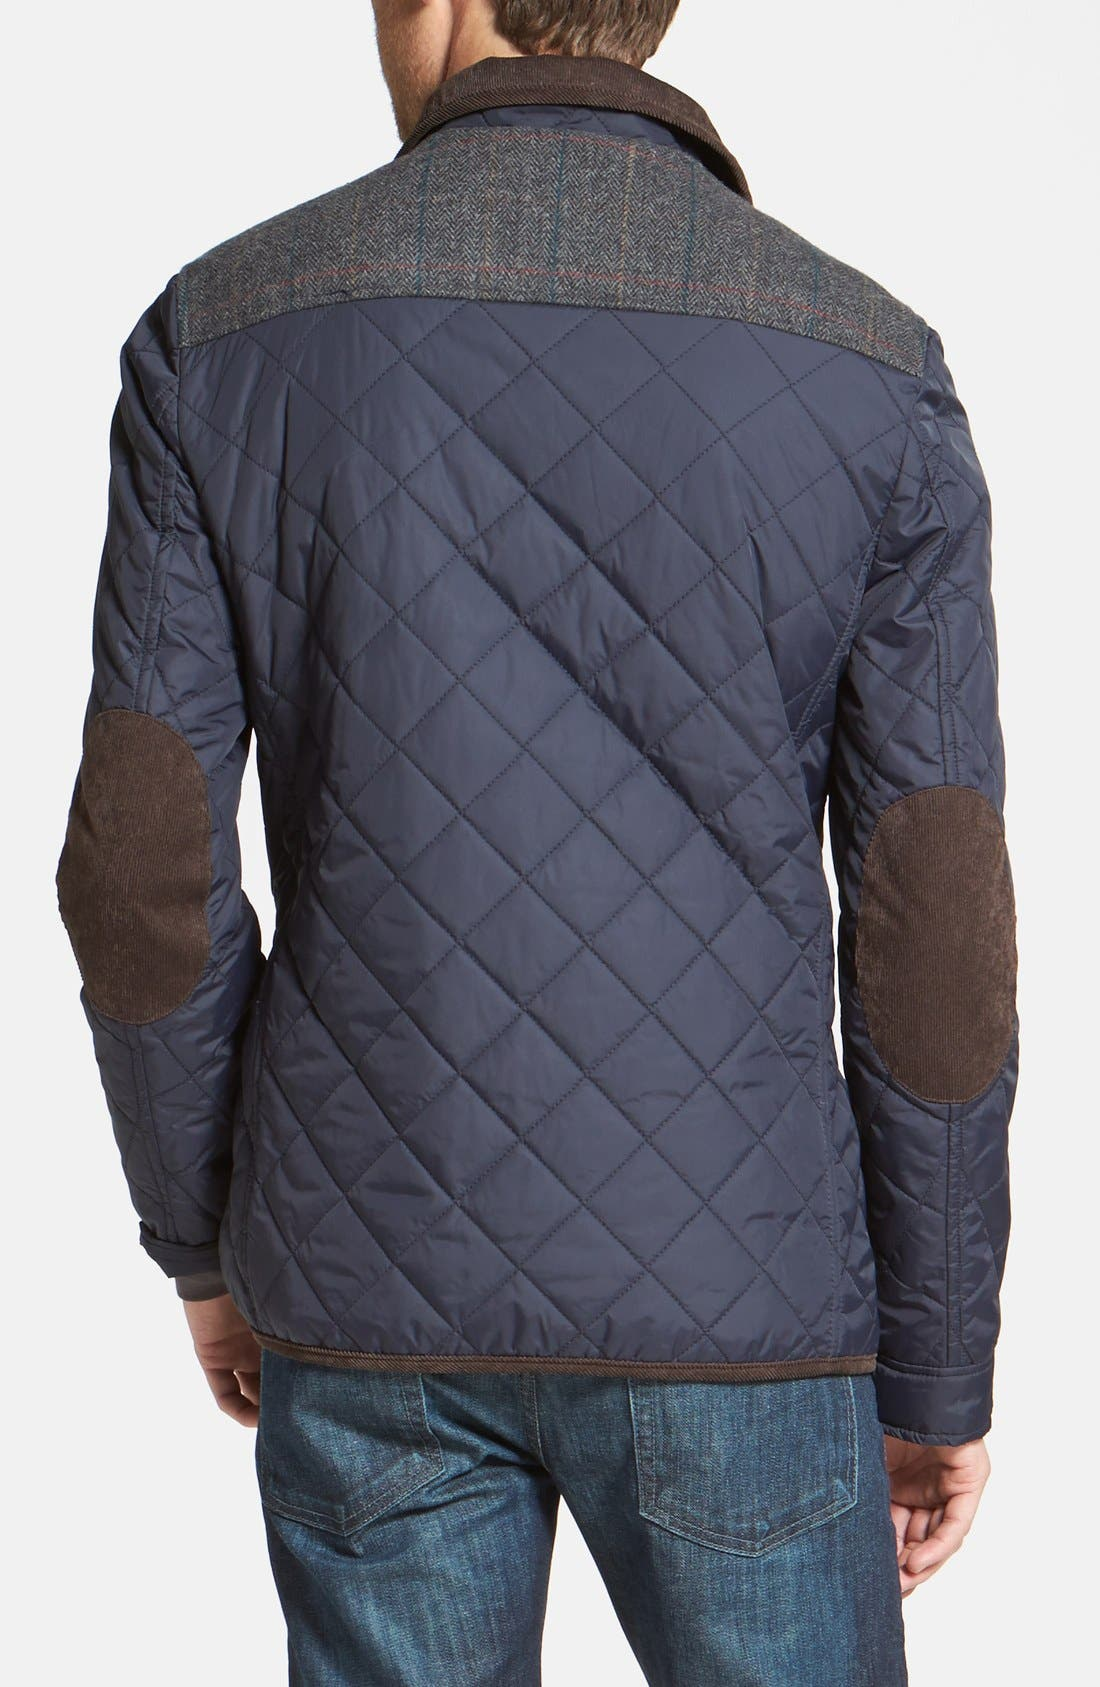 VINCE CAMUTO, Diamond Quilted Full Zip Jacket, Alternate thumbnail 9, color, NAVY